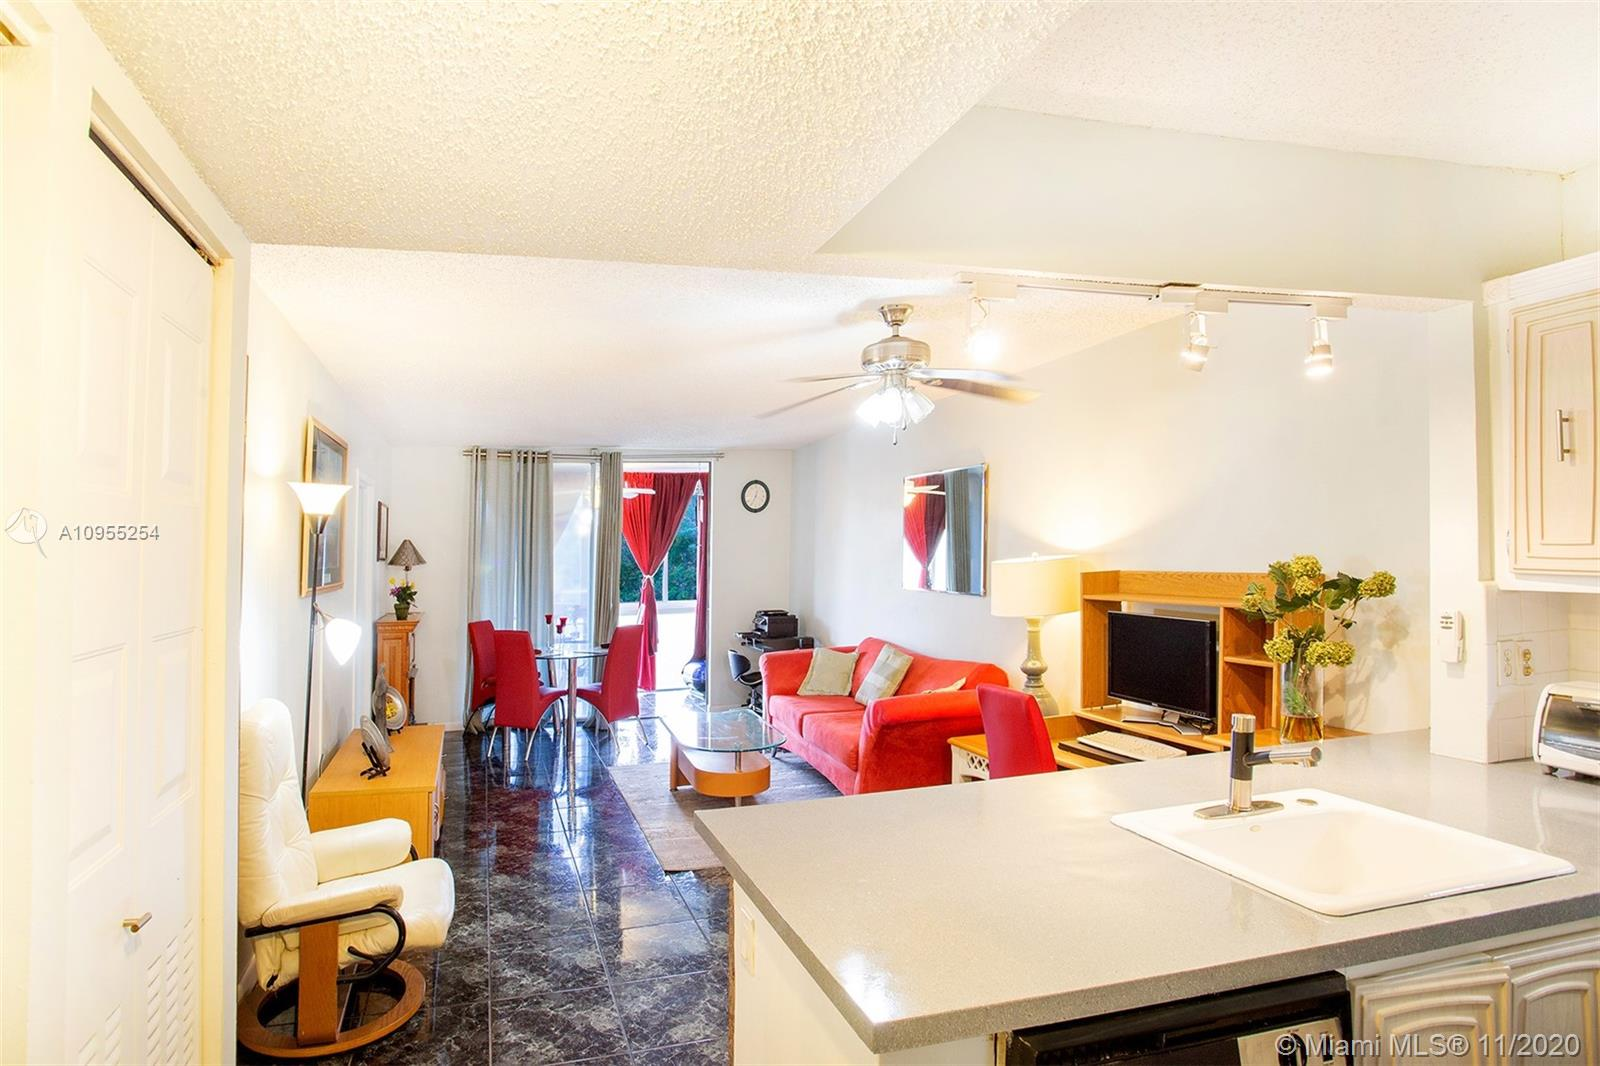 Amazing Large corner 2 beds/ 2 baths top floor unit + FLA Room. Well maintained, open concept kitchen. Large Master bedroom with walk-in closet and bathroom. New impact glass windows overlooking clubhouse and pool. Active 55+ gated community. Partial lake, pool, and sunset views.**PERFECT LOCATION (15-20 mins) to the beach and FLL airport and surrounded by shopping centers and close to I-95. No pets allowed. Low maintenance including cable with an extensive menu. Plenty of amenities: park-like walking areas, large swimming pool, laundry room on each floor, brand new clubhouse, sauna, fitness center, BBQ/Picnic area, and community activities. *** Absolute MUST SEE!*** READY TO MOVE IN! *** PERFECT FOR RELOCATION OR INVESTMENT.*** 24-hour live gate security.